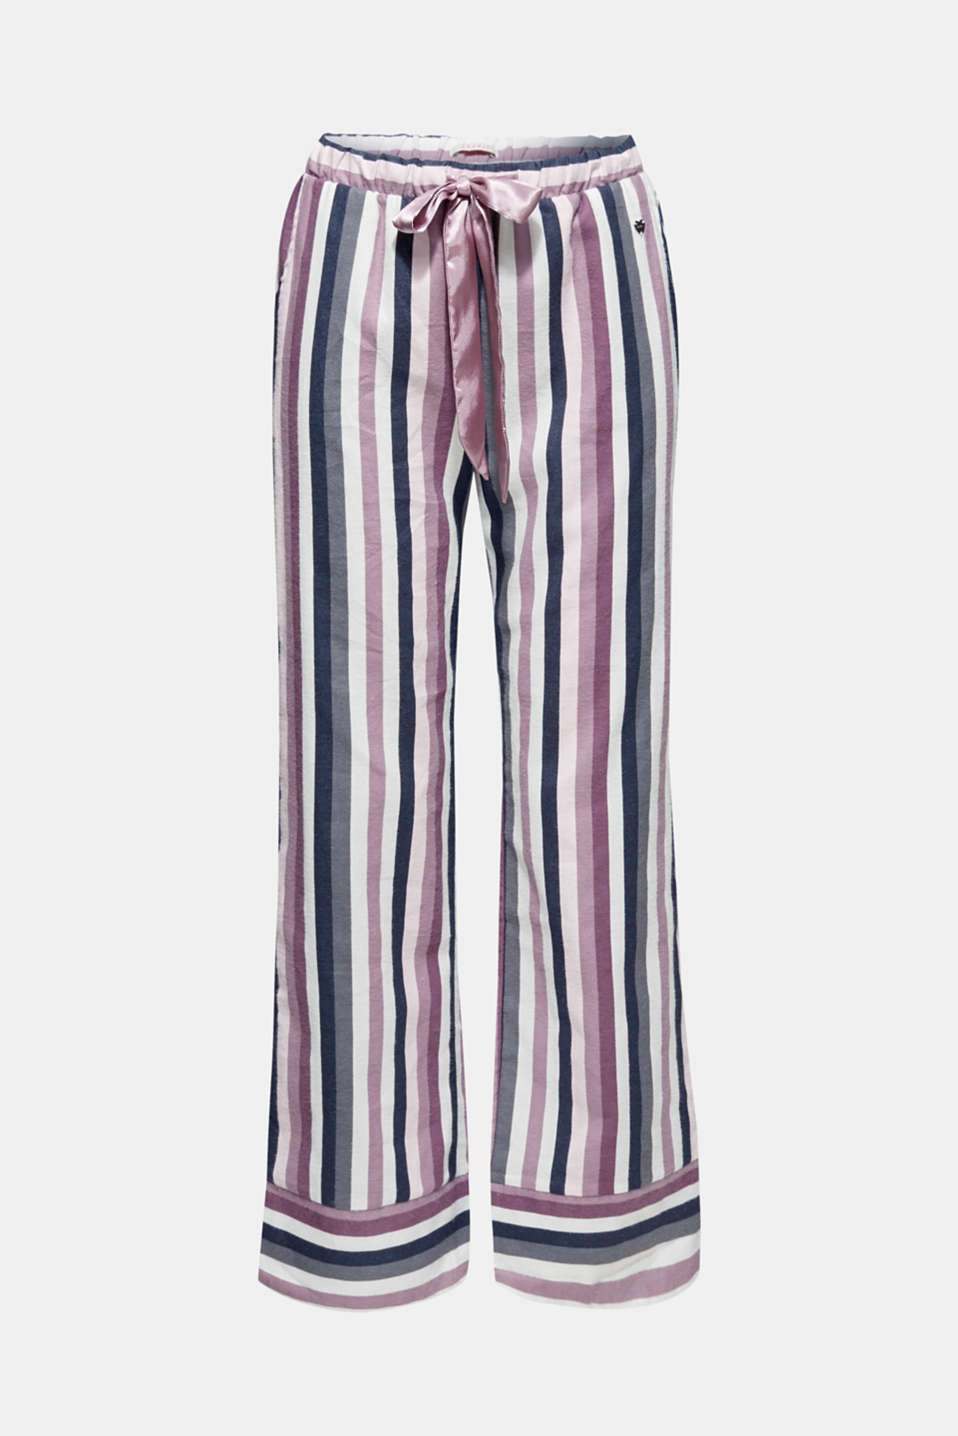 Flannel trousers with satin ribbon ties, 100% cotton, MAUVE, detail image number 3